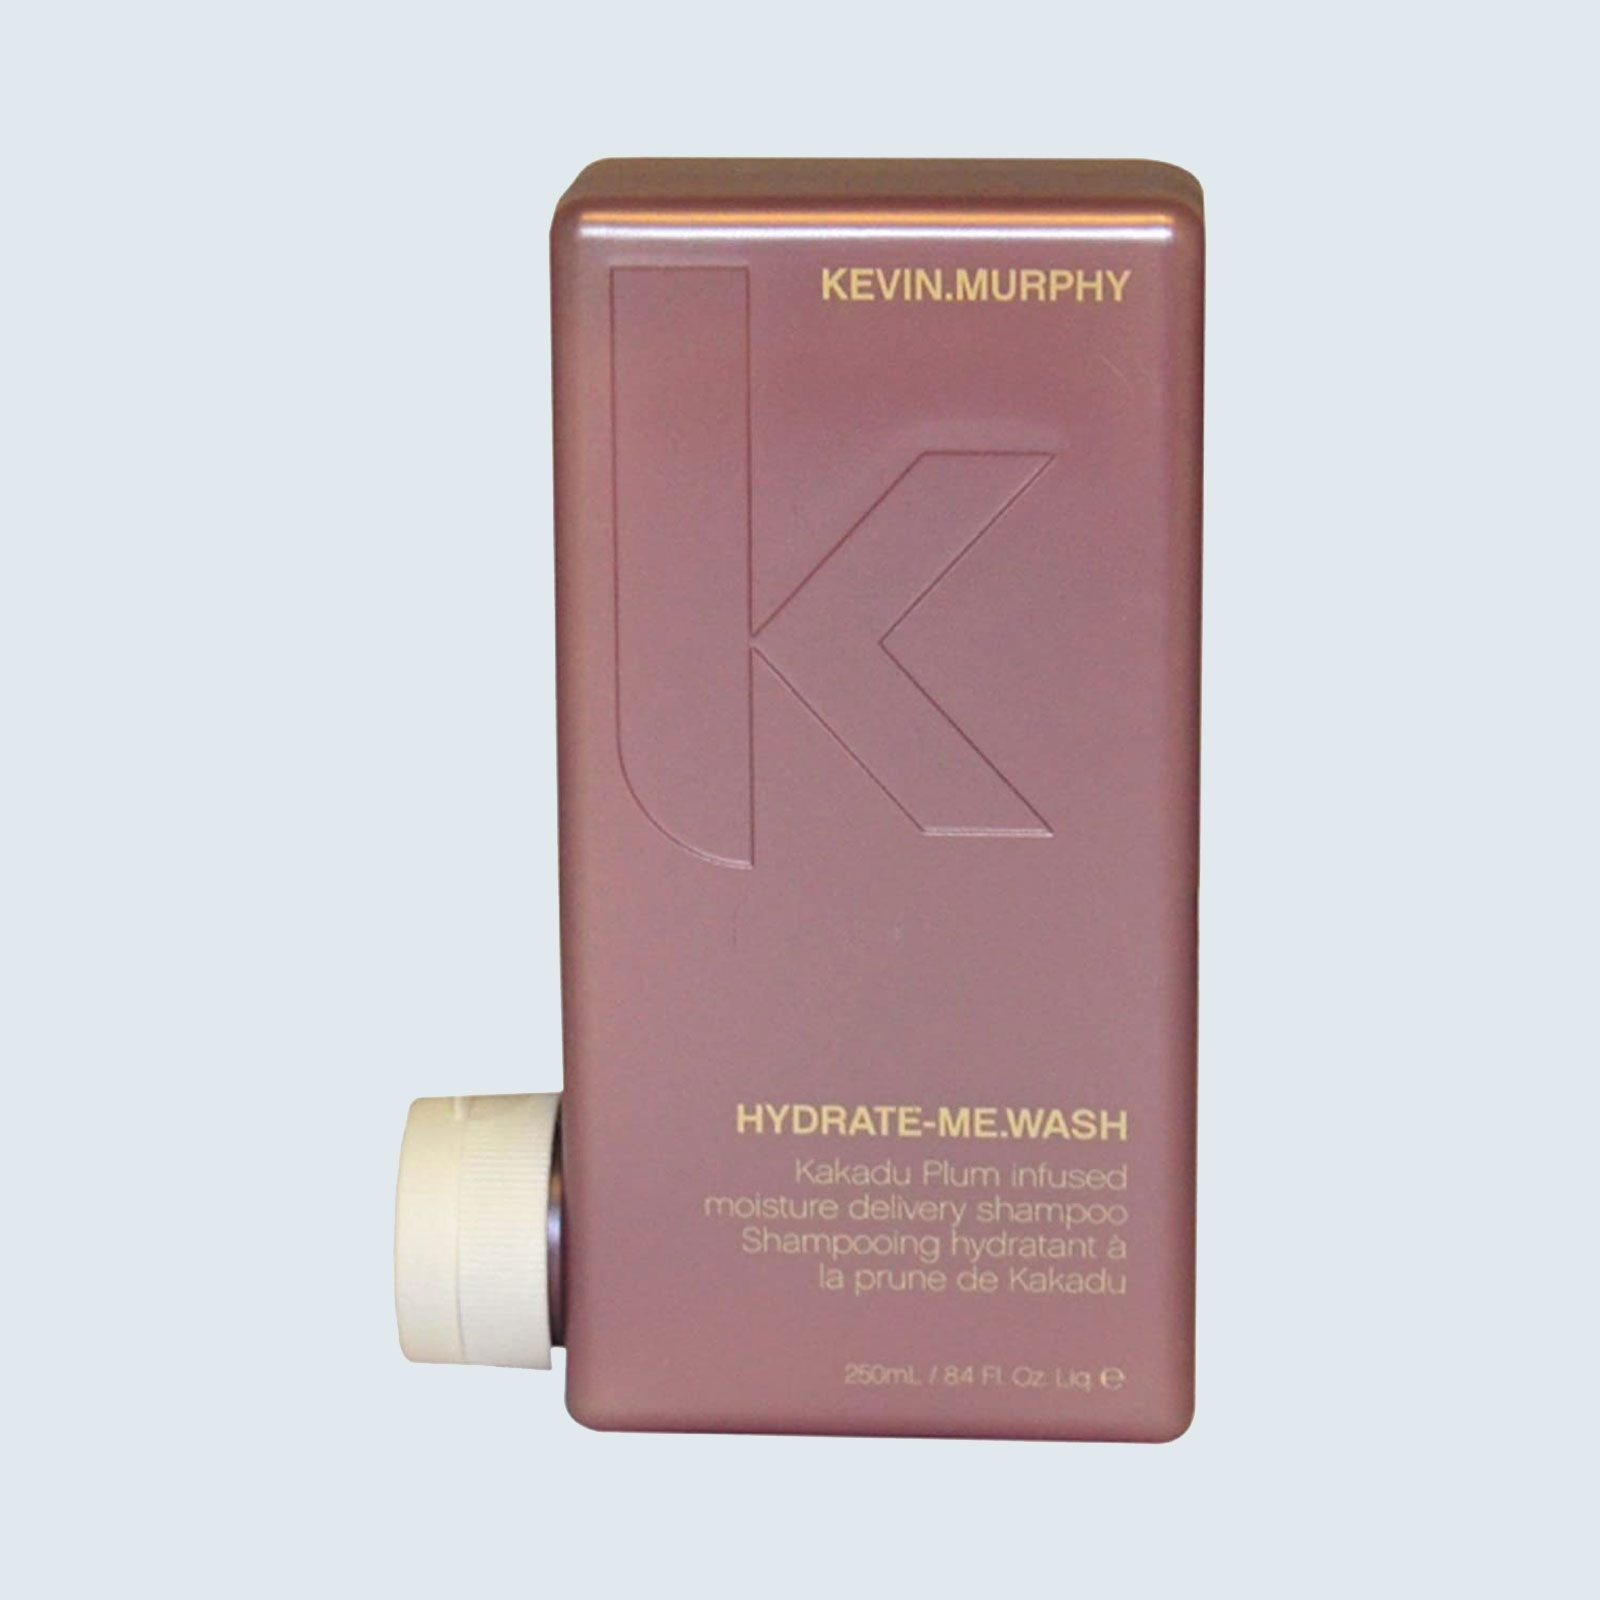 Best shampoo for kinky hair: Kevin.Murphy Hydrate-Me.Wash